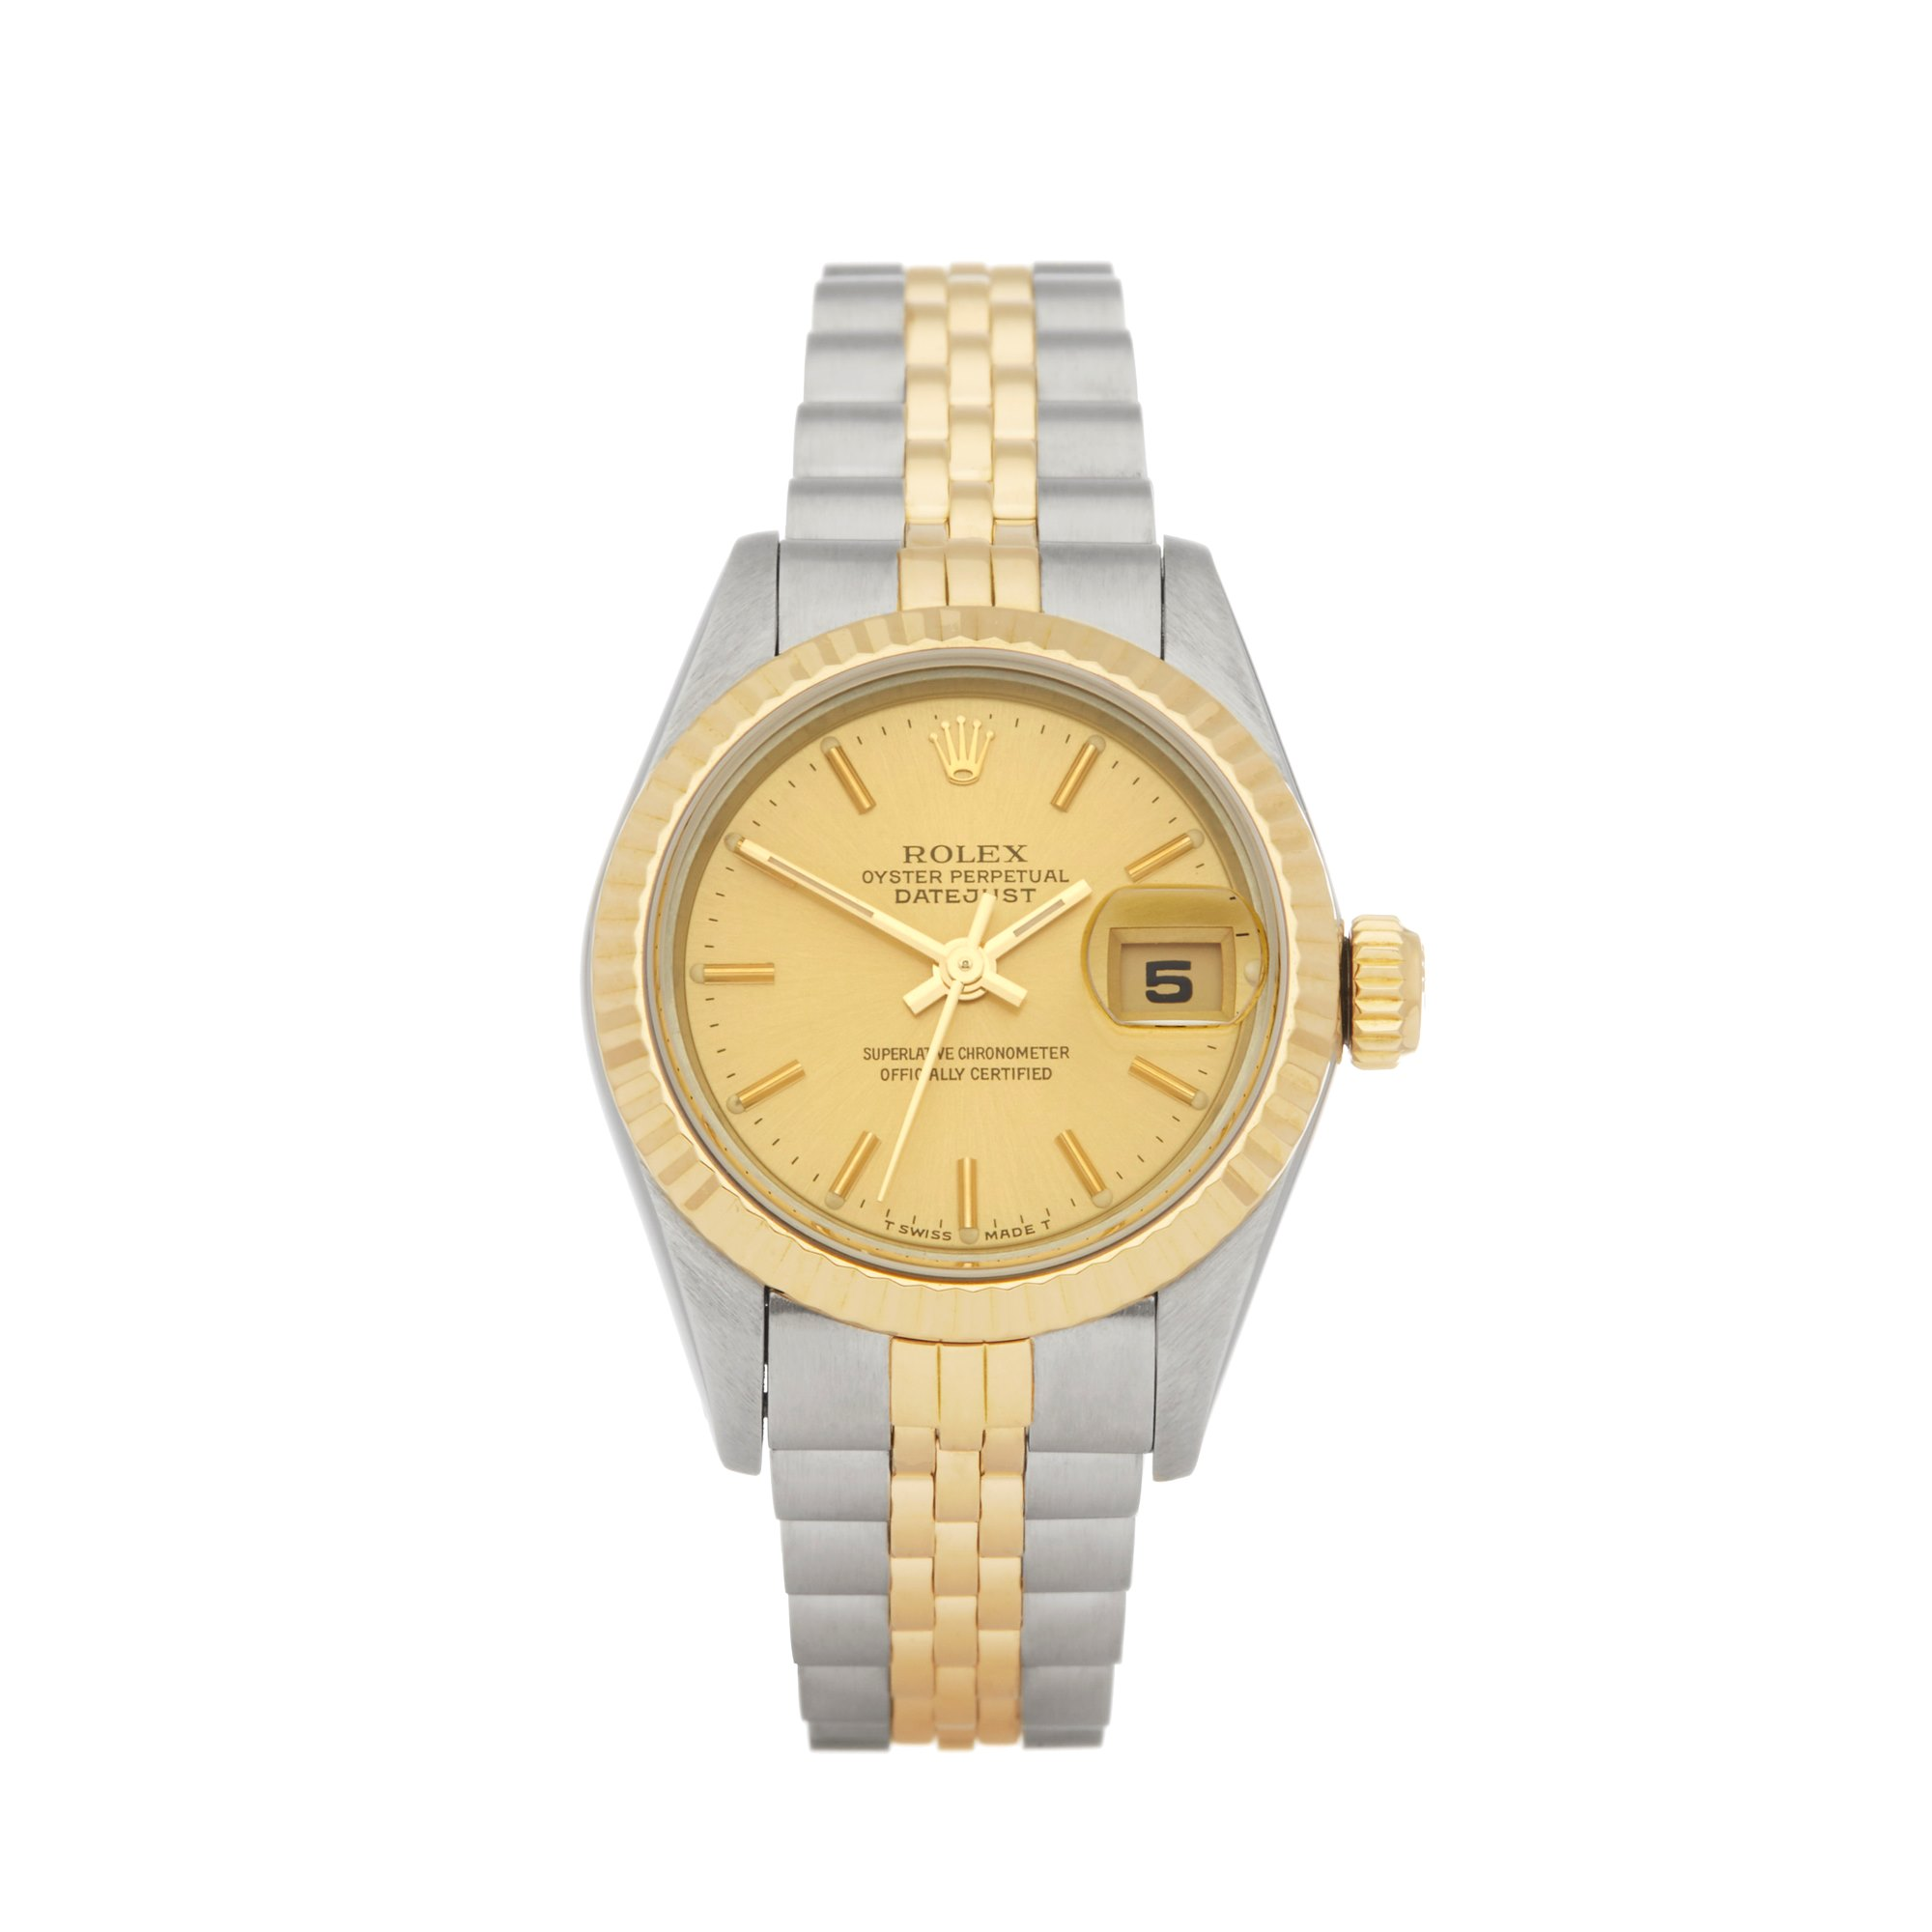 Rolex Datejust 26 Stainless Steel & Yellow Gold 69173